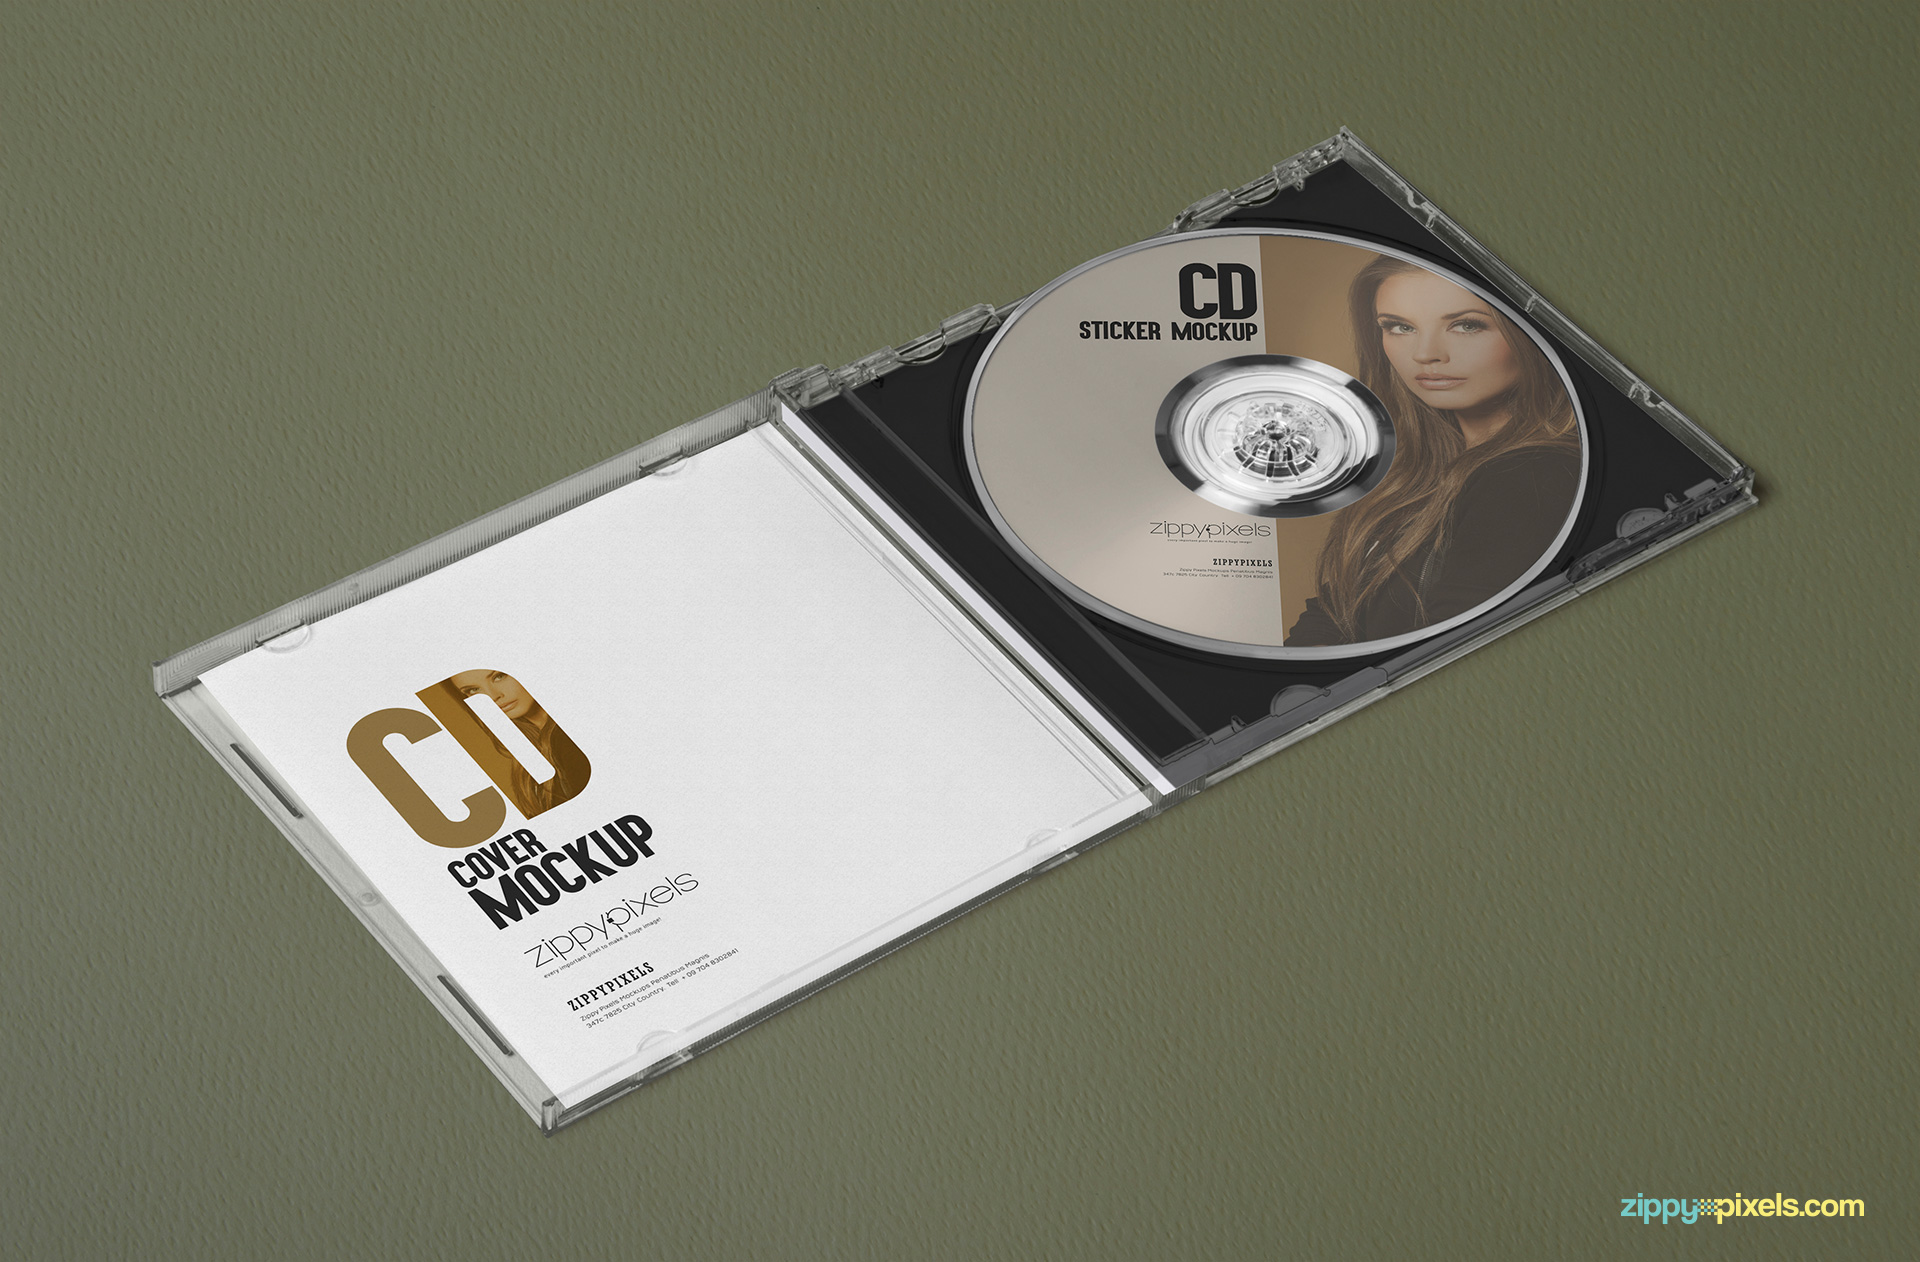 free cd case mockups for cover designs and labeling